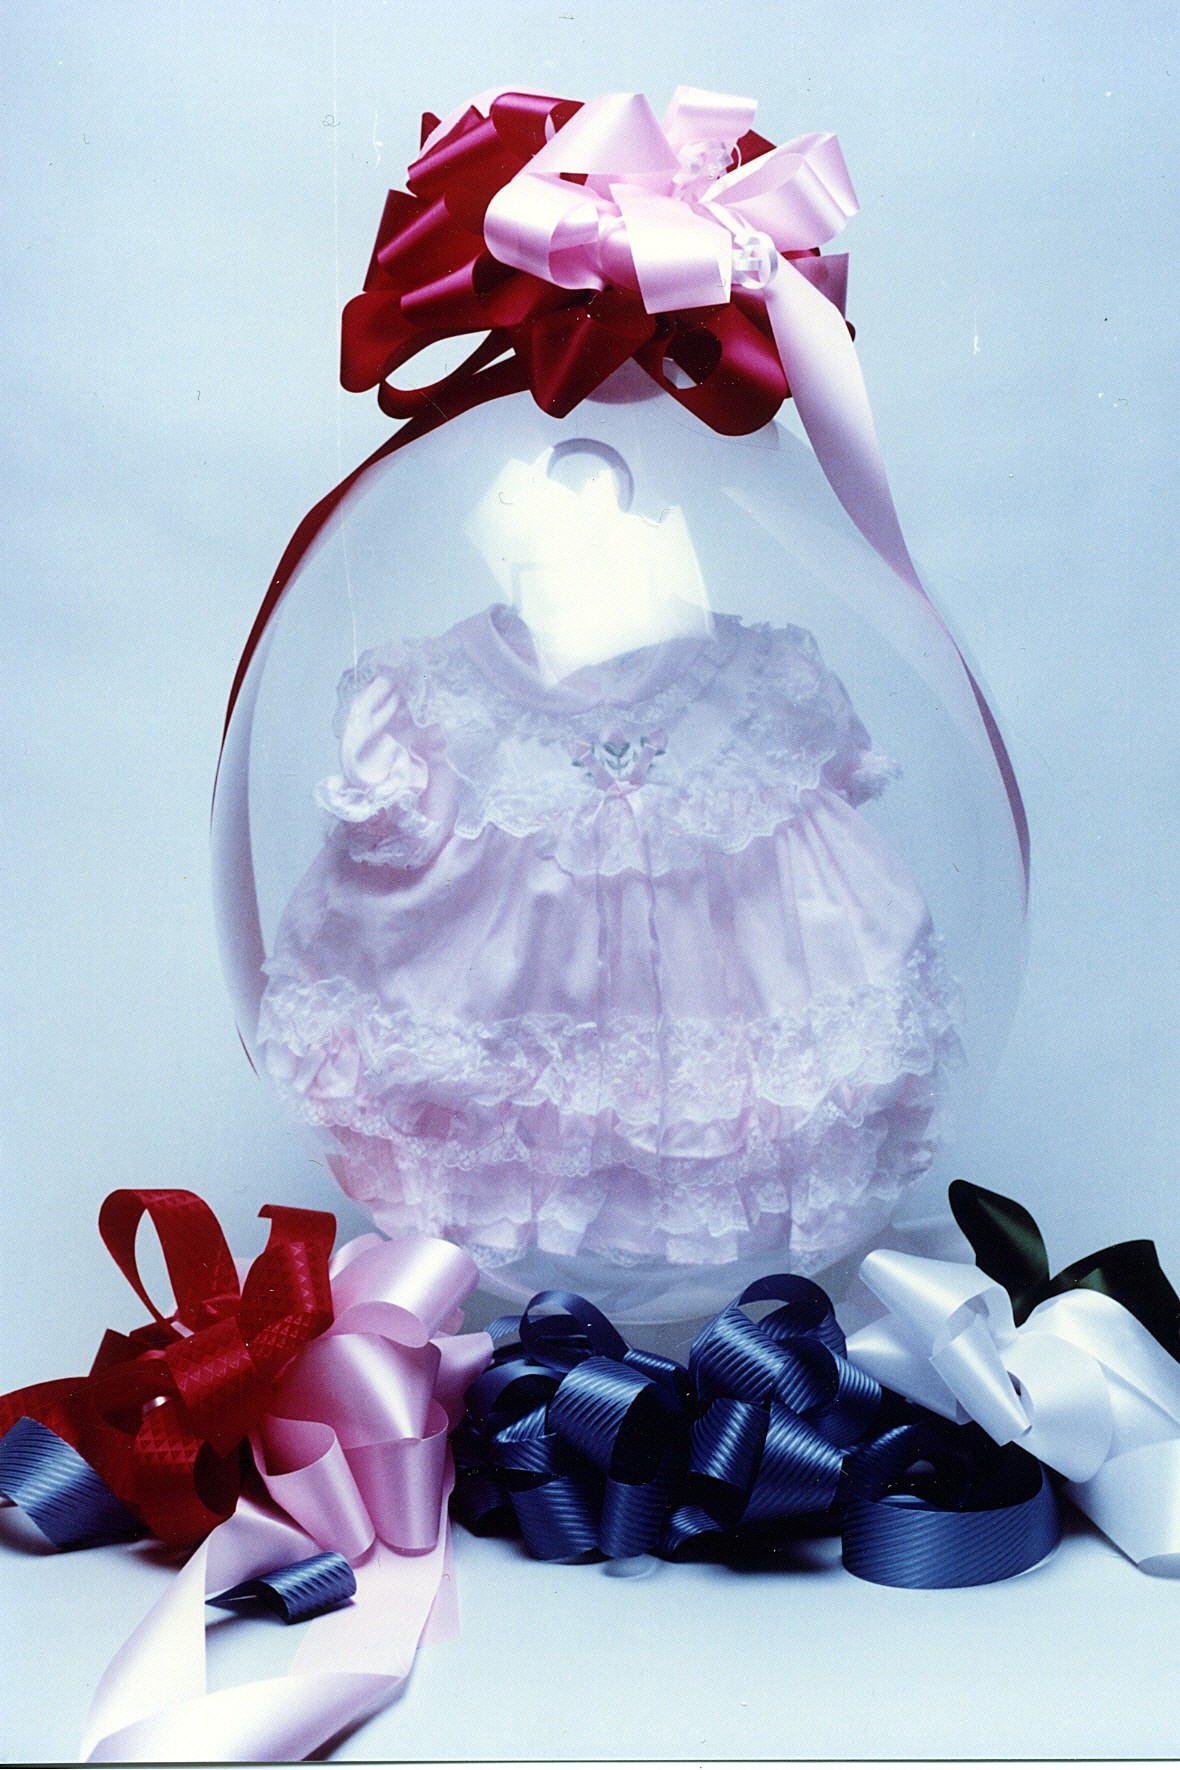 18-inch-qualate-stuffing-balloon-dress.jpg